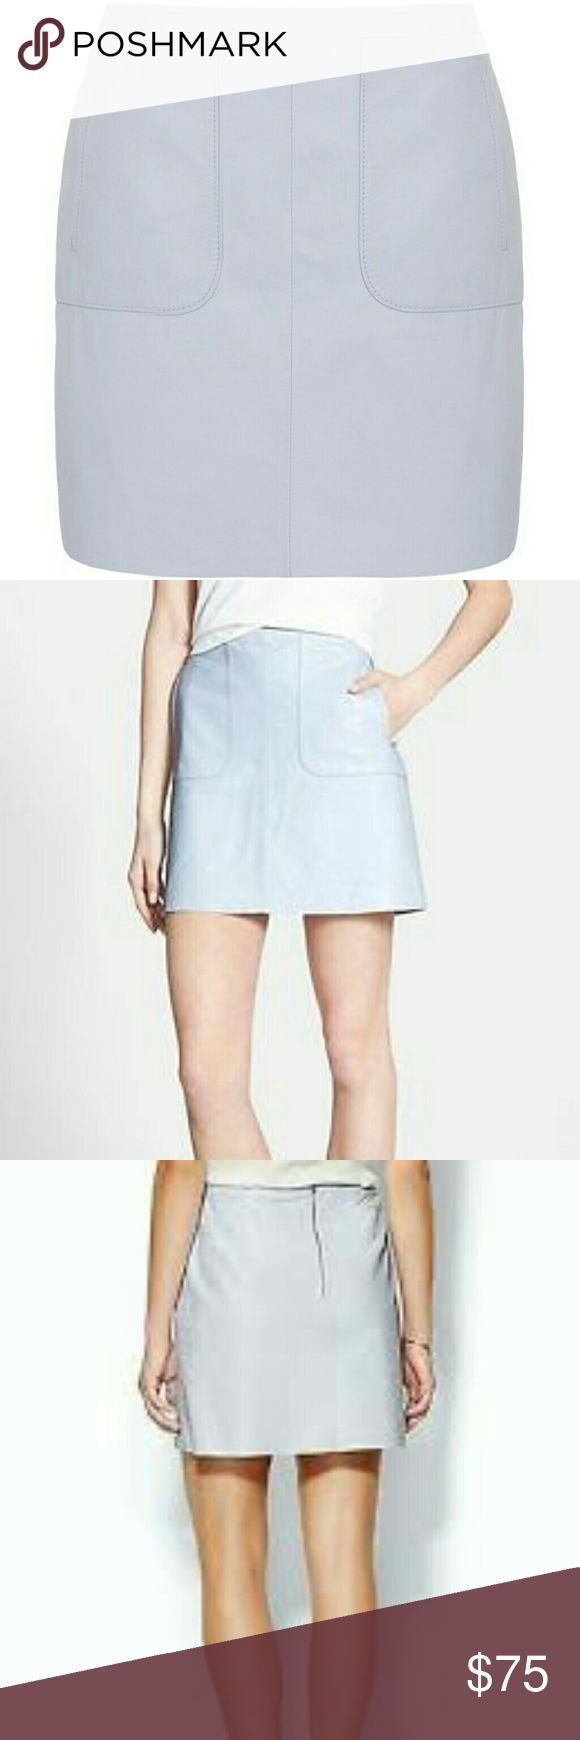 "🆕French Connection soft leather mini skirt French Connection natural leather mini skirt, color is Dew Blue. Two front pockets, back zipper closure, lined. Very soft and pleasant leather. Size 8 Approx measurements laying flat: waist 16"", length 17"". French Connection Skirts Mini"